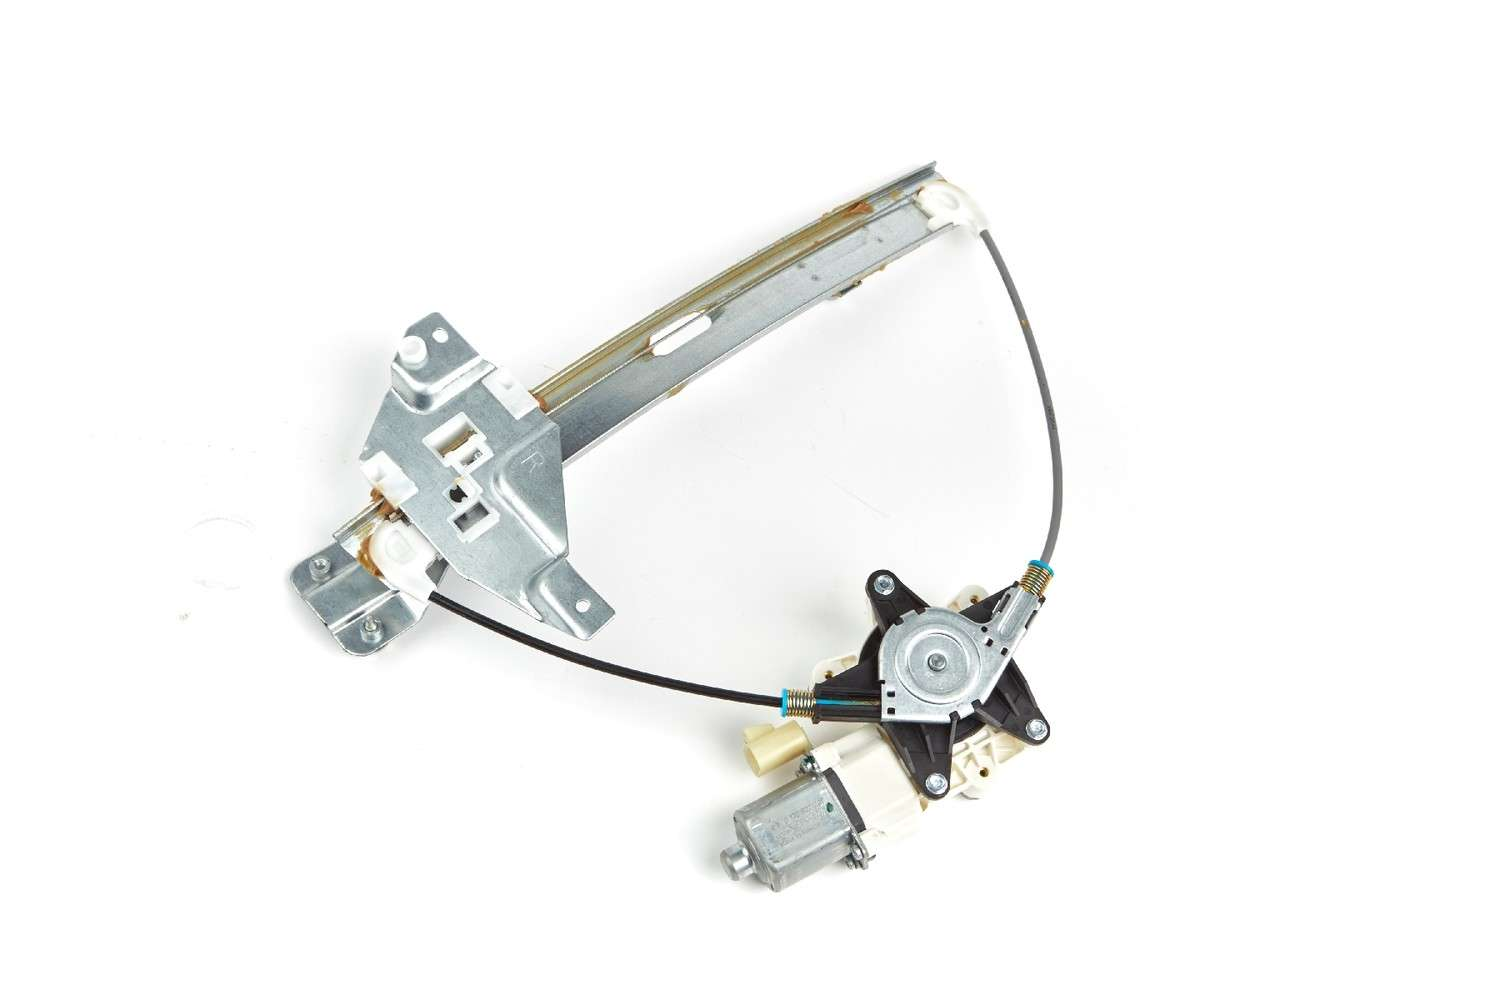 ACDELCO GM ORIGINAL EQUIPMENT - Power Window Motor and Regulator Assembly (Rear Right) - DCB 23336825